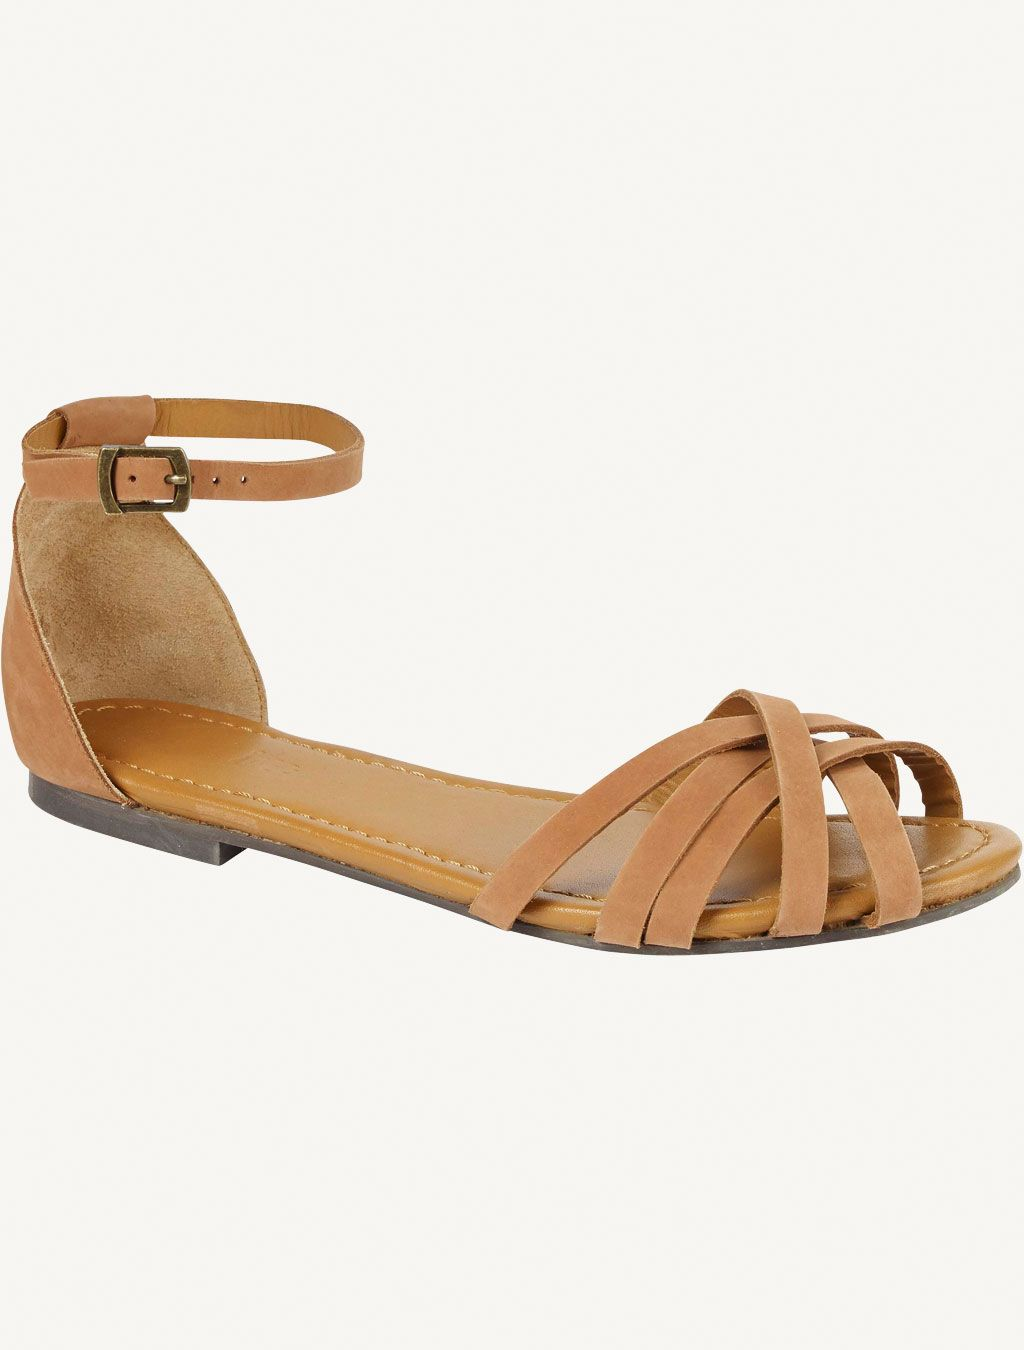 608dfe1728760 cute brown sandals from Fat Face